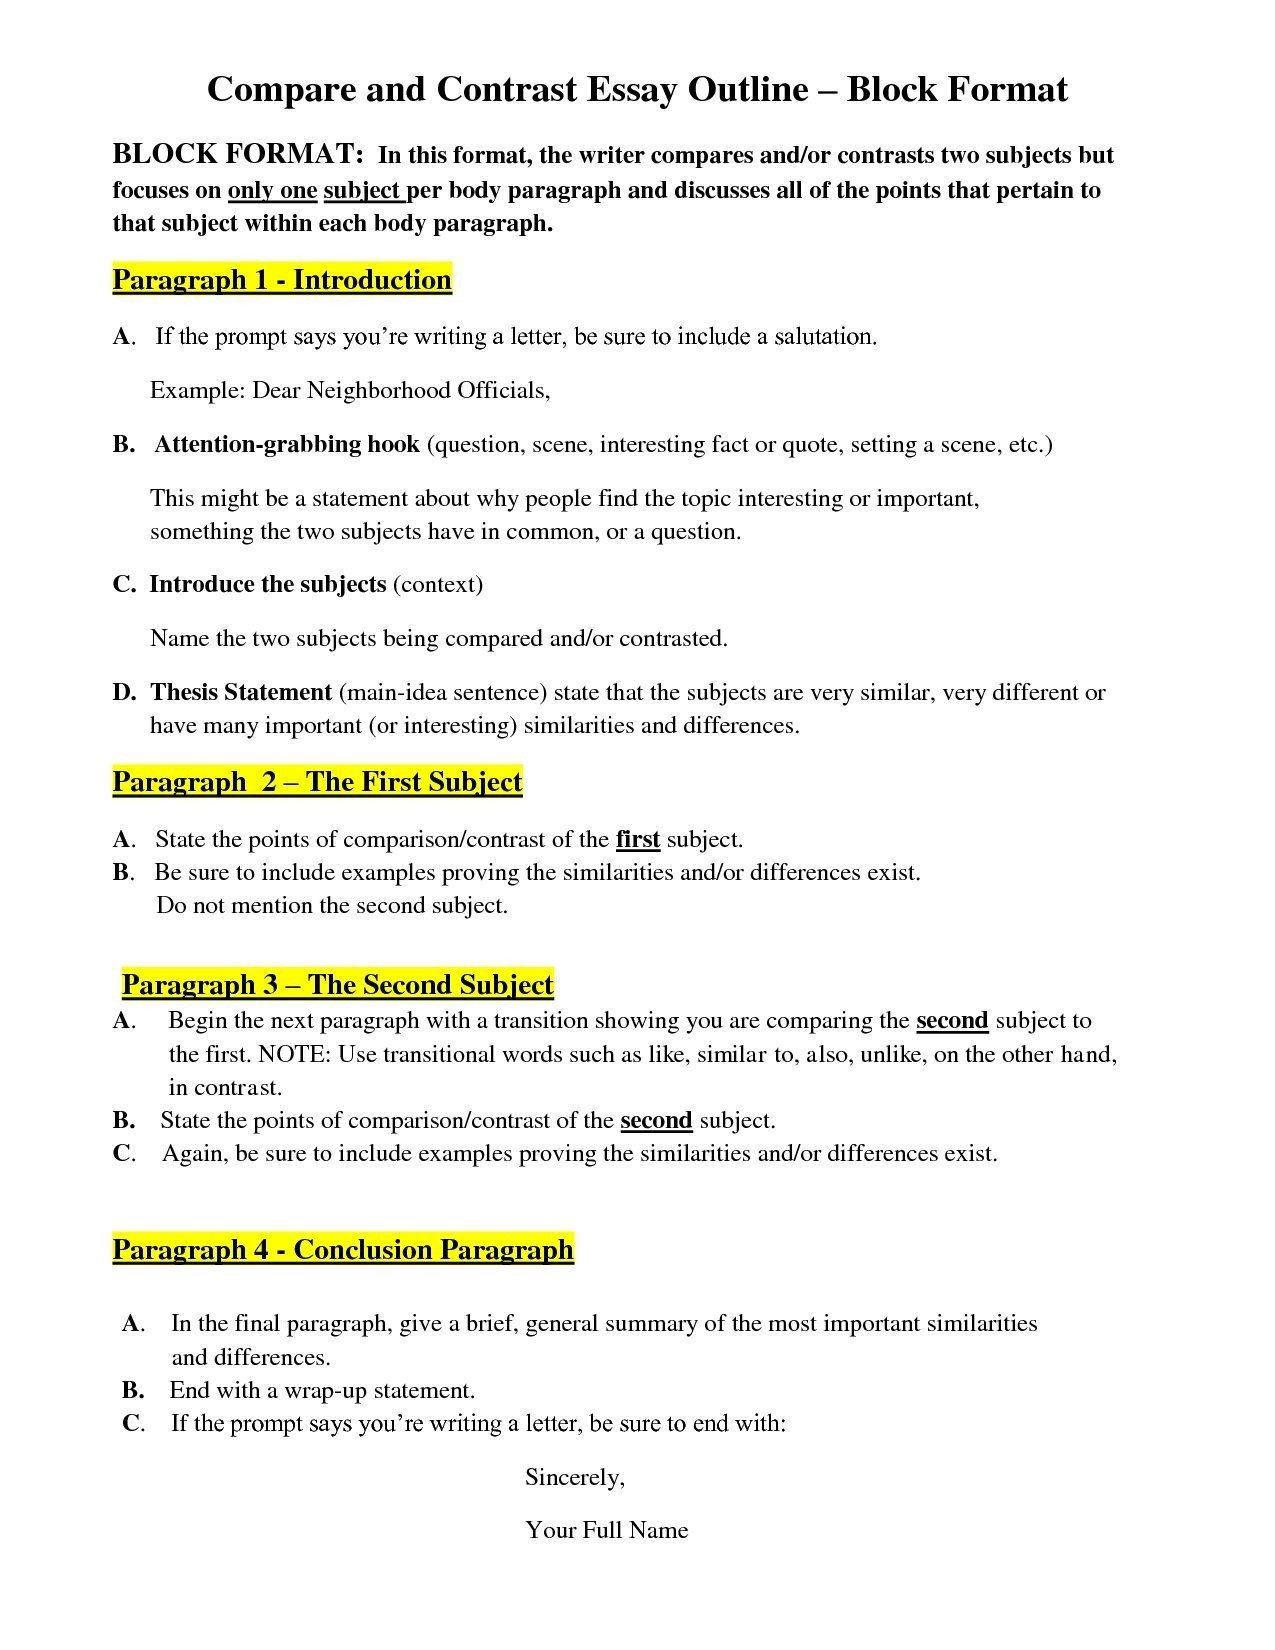 014 Essay Examplempare Andntrastmparison Best Examples Of Scenario In 6th Grade An Goo 3rd Food 5th Middle School Block Format Pdf High 4th Vs Striking Compare And Contrast Example Topics 8 8th College Outline Full